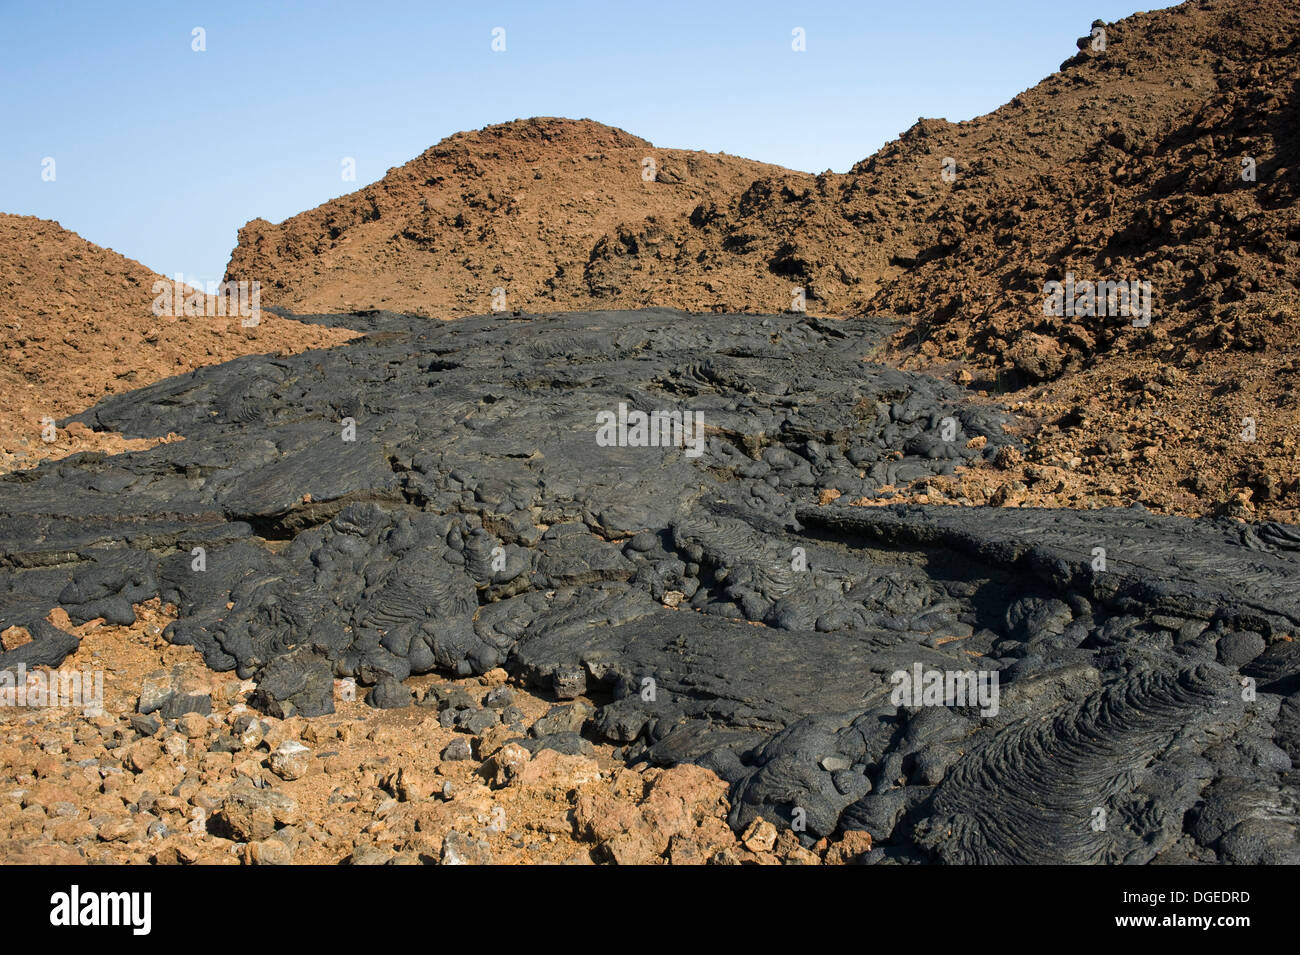 Lava flow dry volcanic ash Galapagos - Stock Image